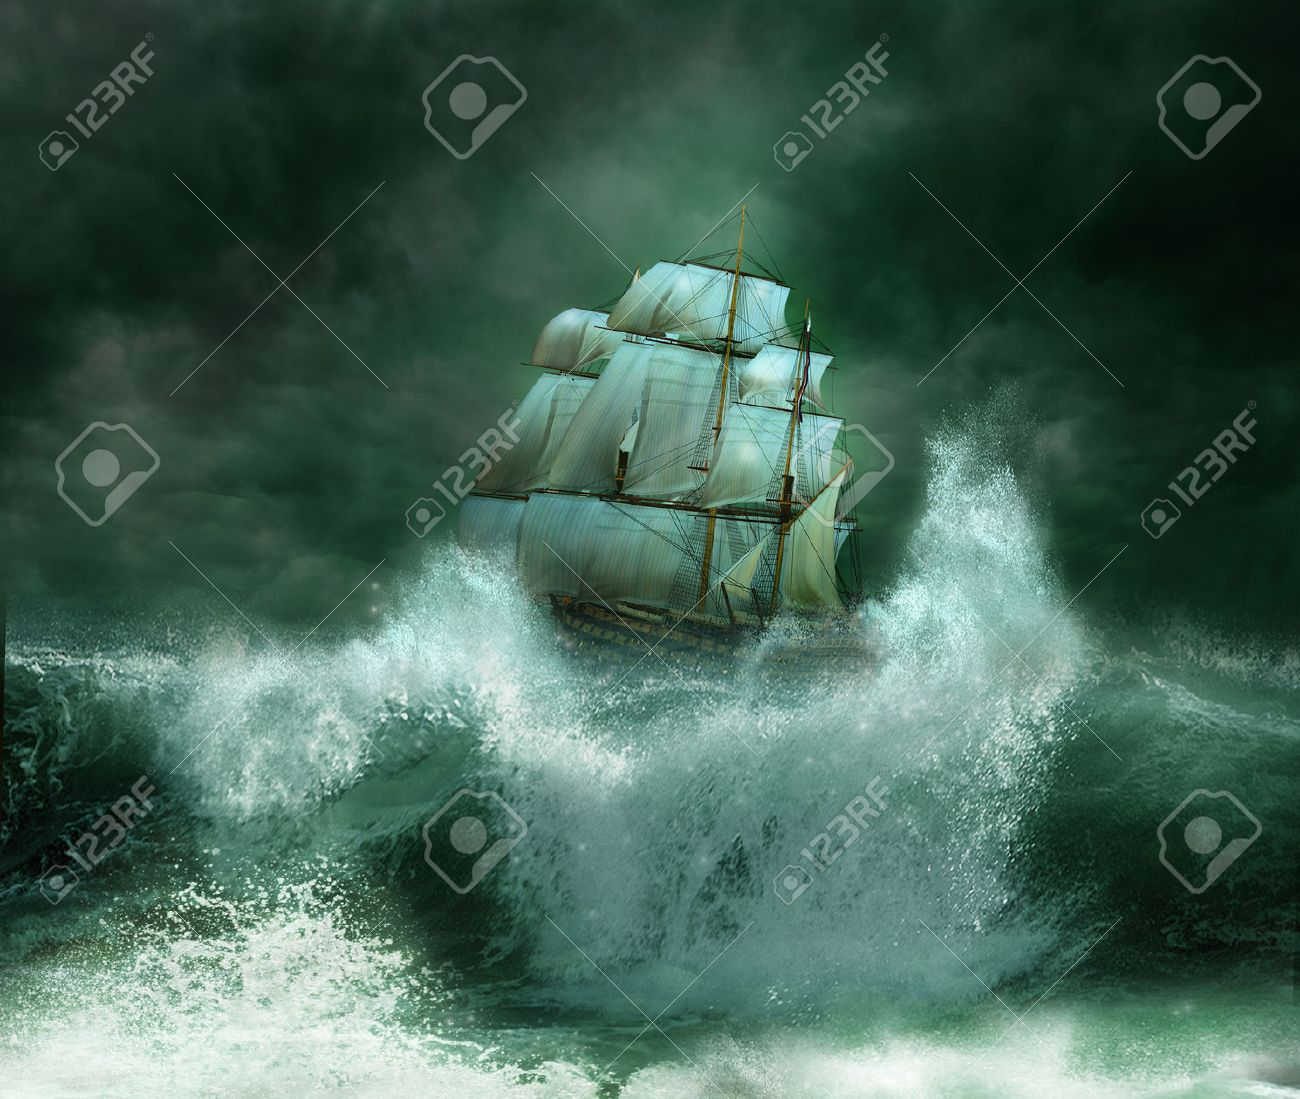 Old ship in a thunderstorm - 27612964